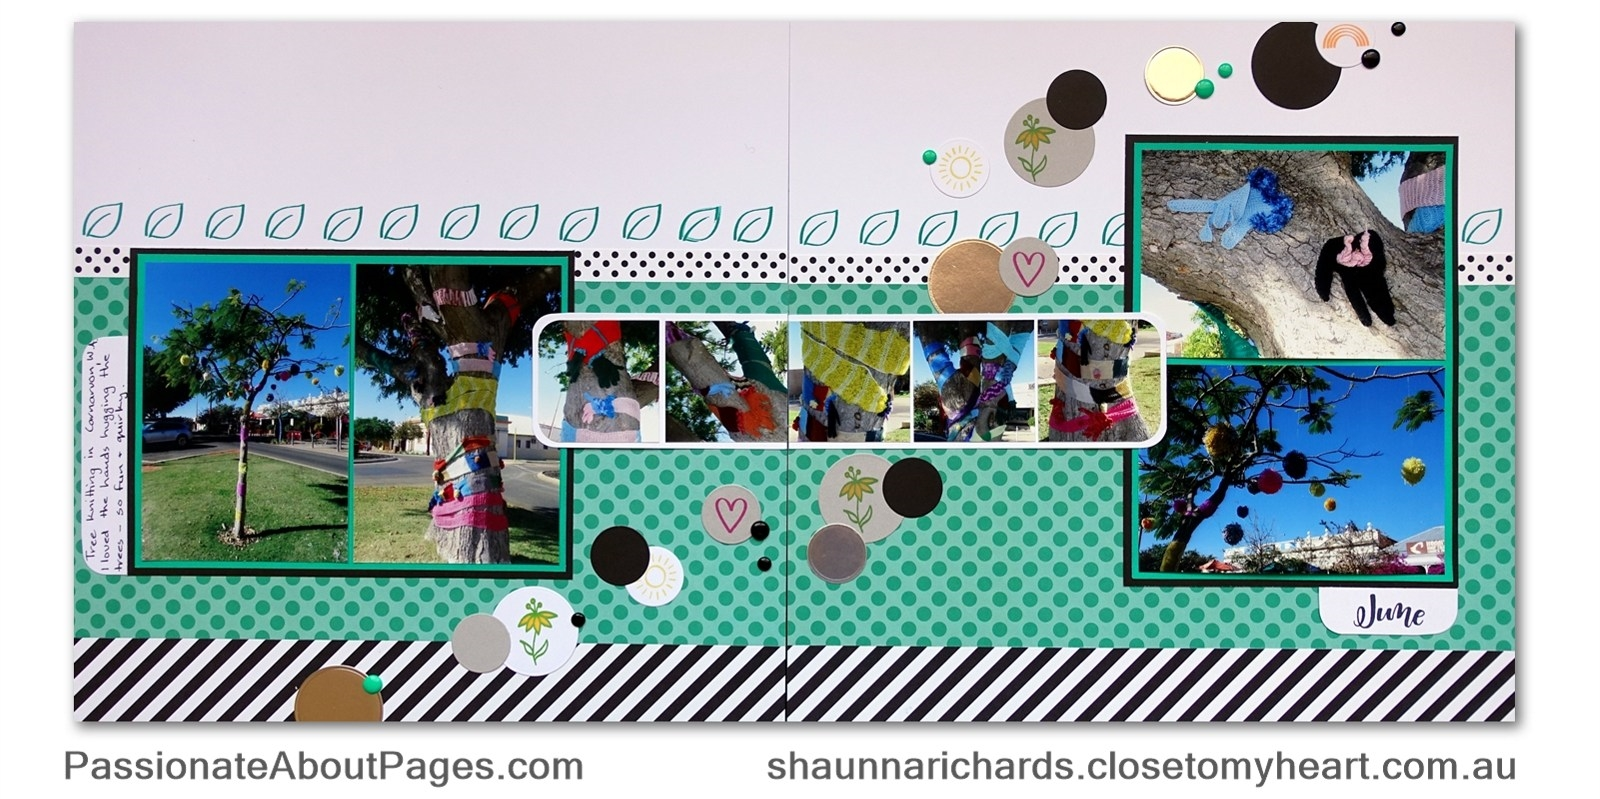 Create whimsical decorations for your pages using S1711 Through the Year stamps by Close To My Heart. www.shaunnarichards.ctmh.com.au